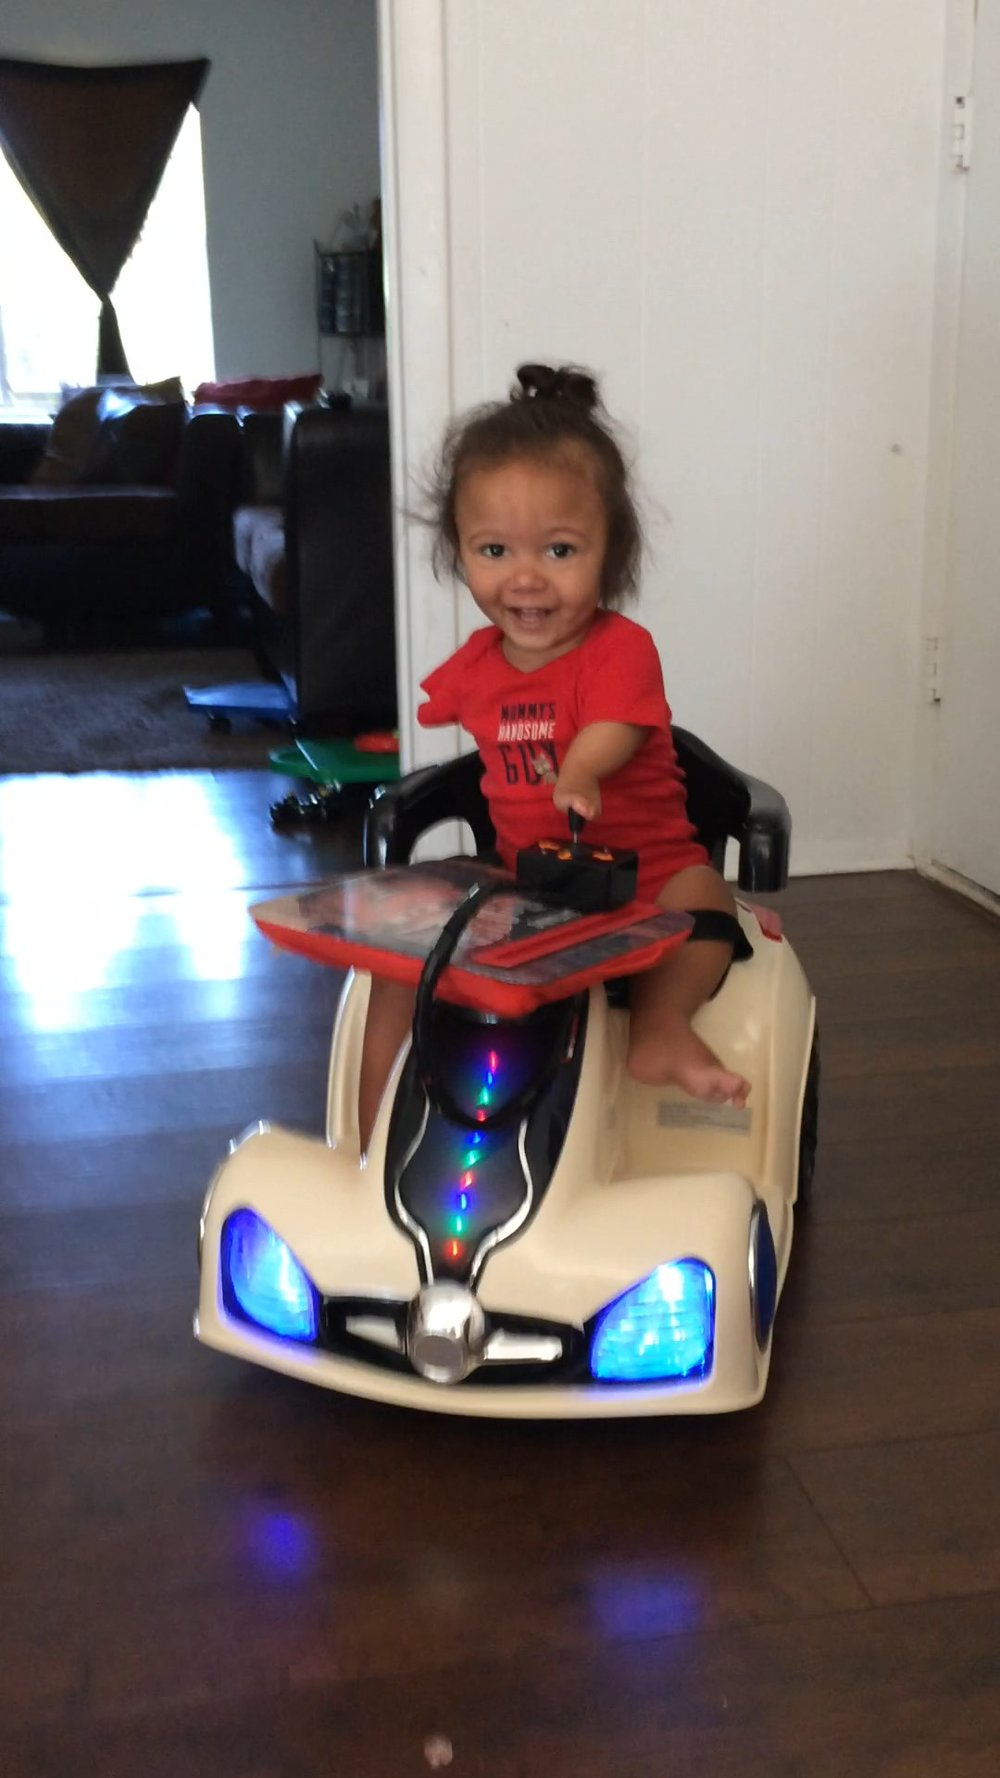 This cutie graduated from his car to getting a big boy power wheelchair!